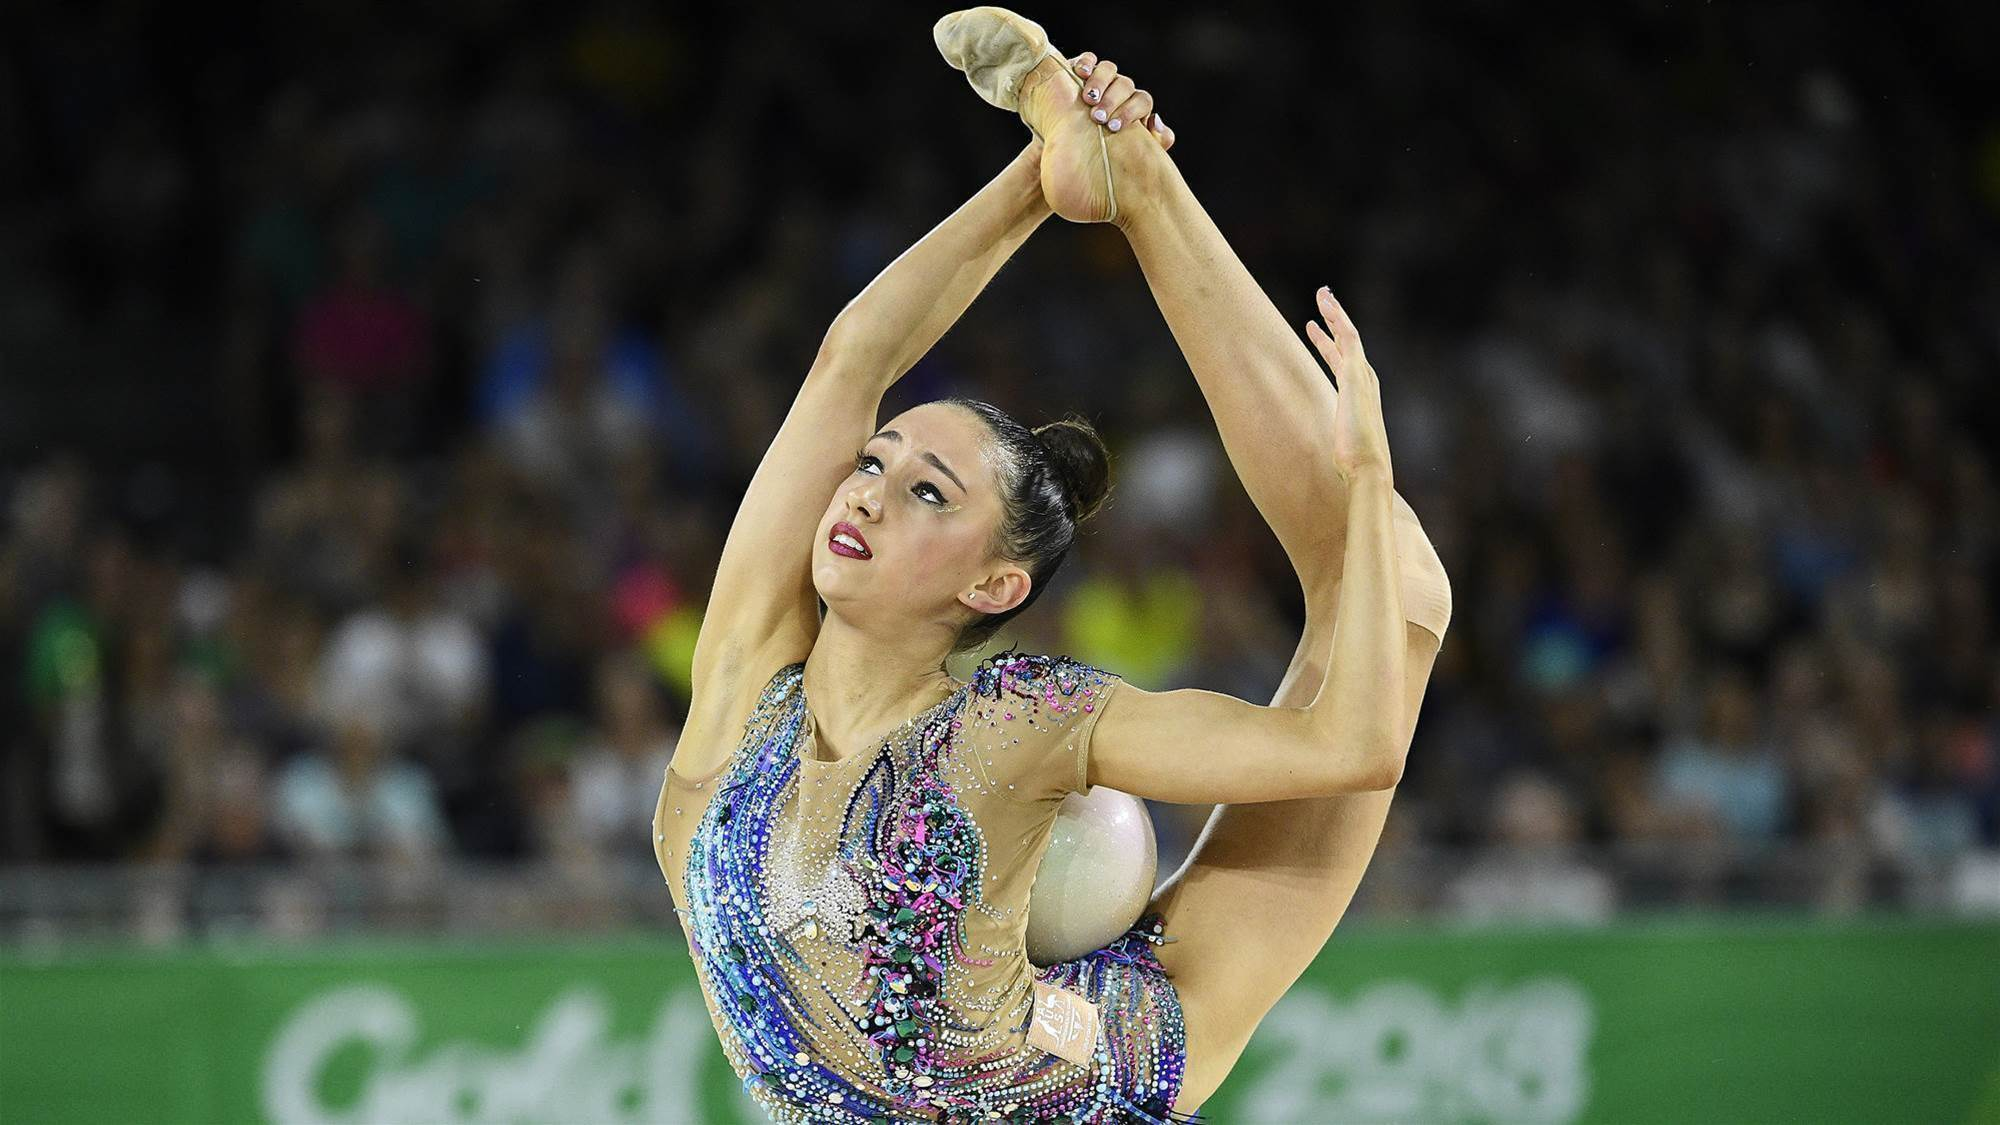 Whirlwind adventure for young Aussie gymnast